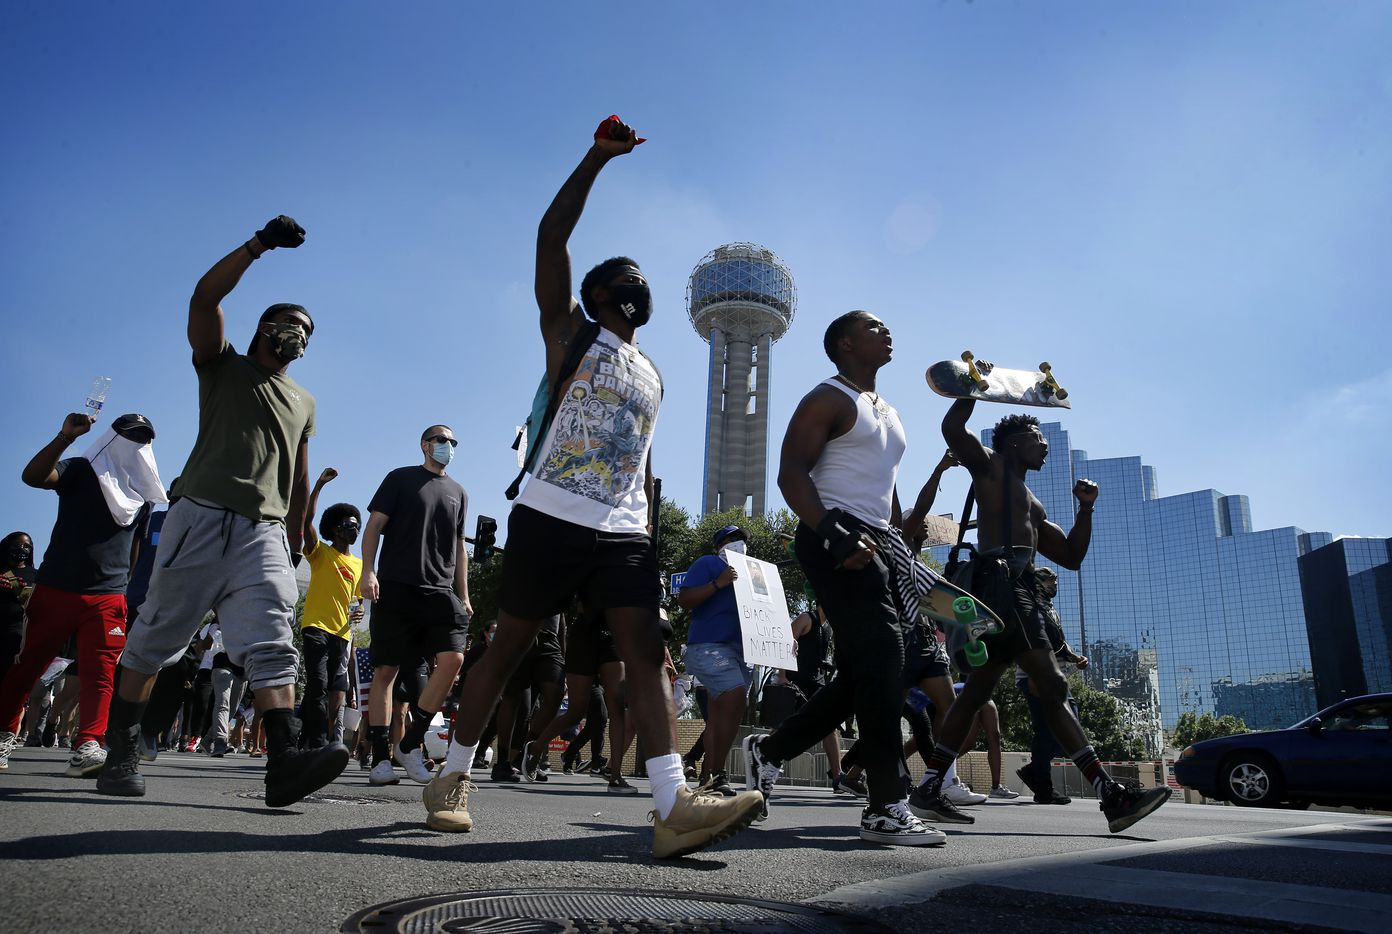 Protestors supporting Black Lives Matters rally march past Reunion Tower on their way to Dealey Plaza after a rally at Dallas City Hall, Wednesday, June 3, 2020. (Tom Fox/The Dallas Morning News)